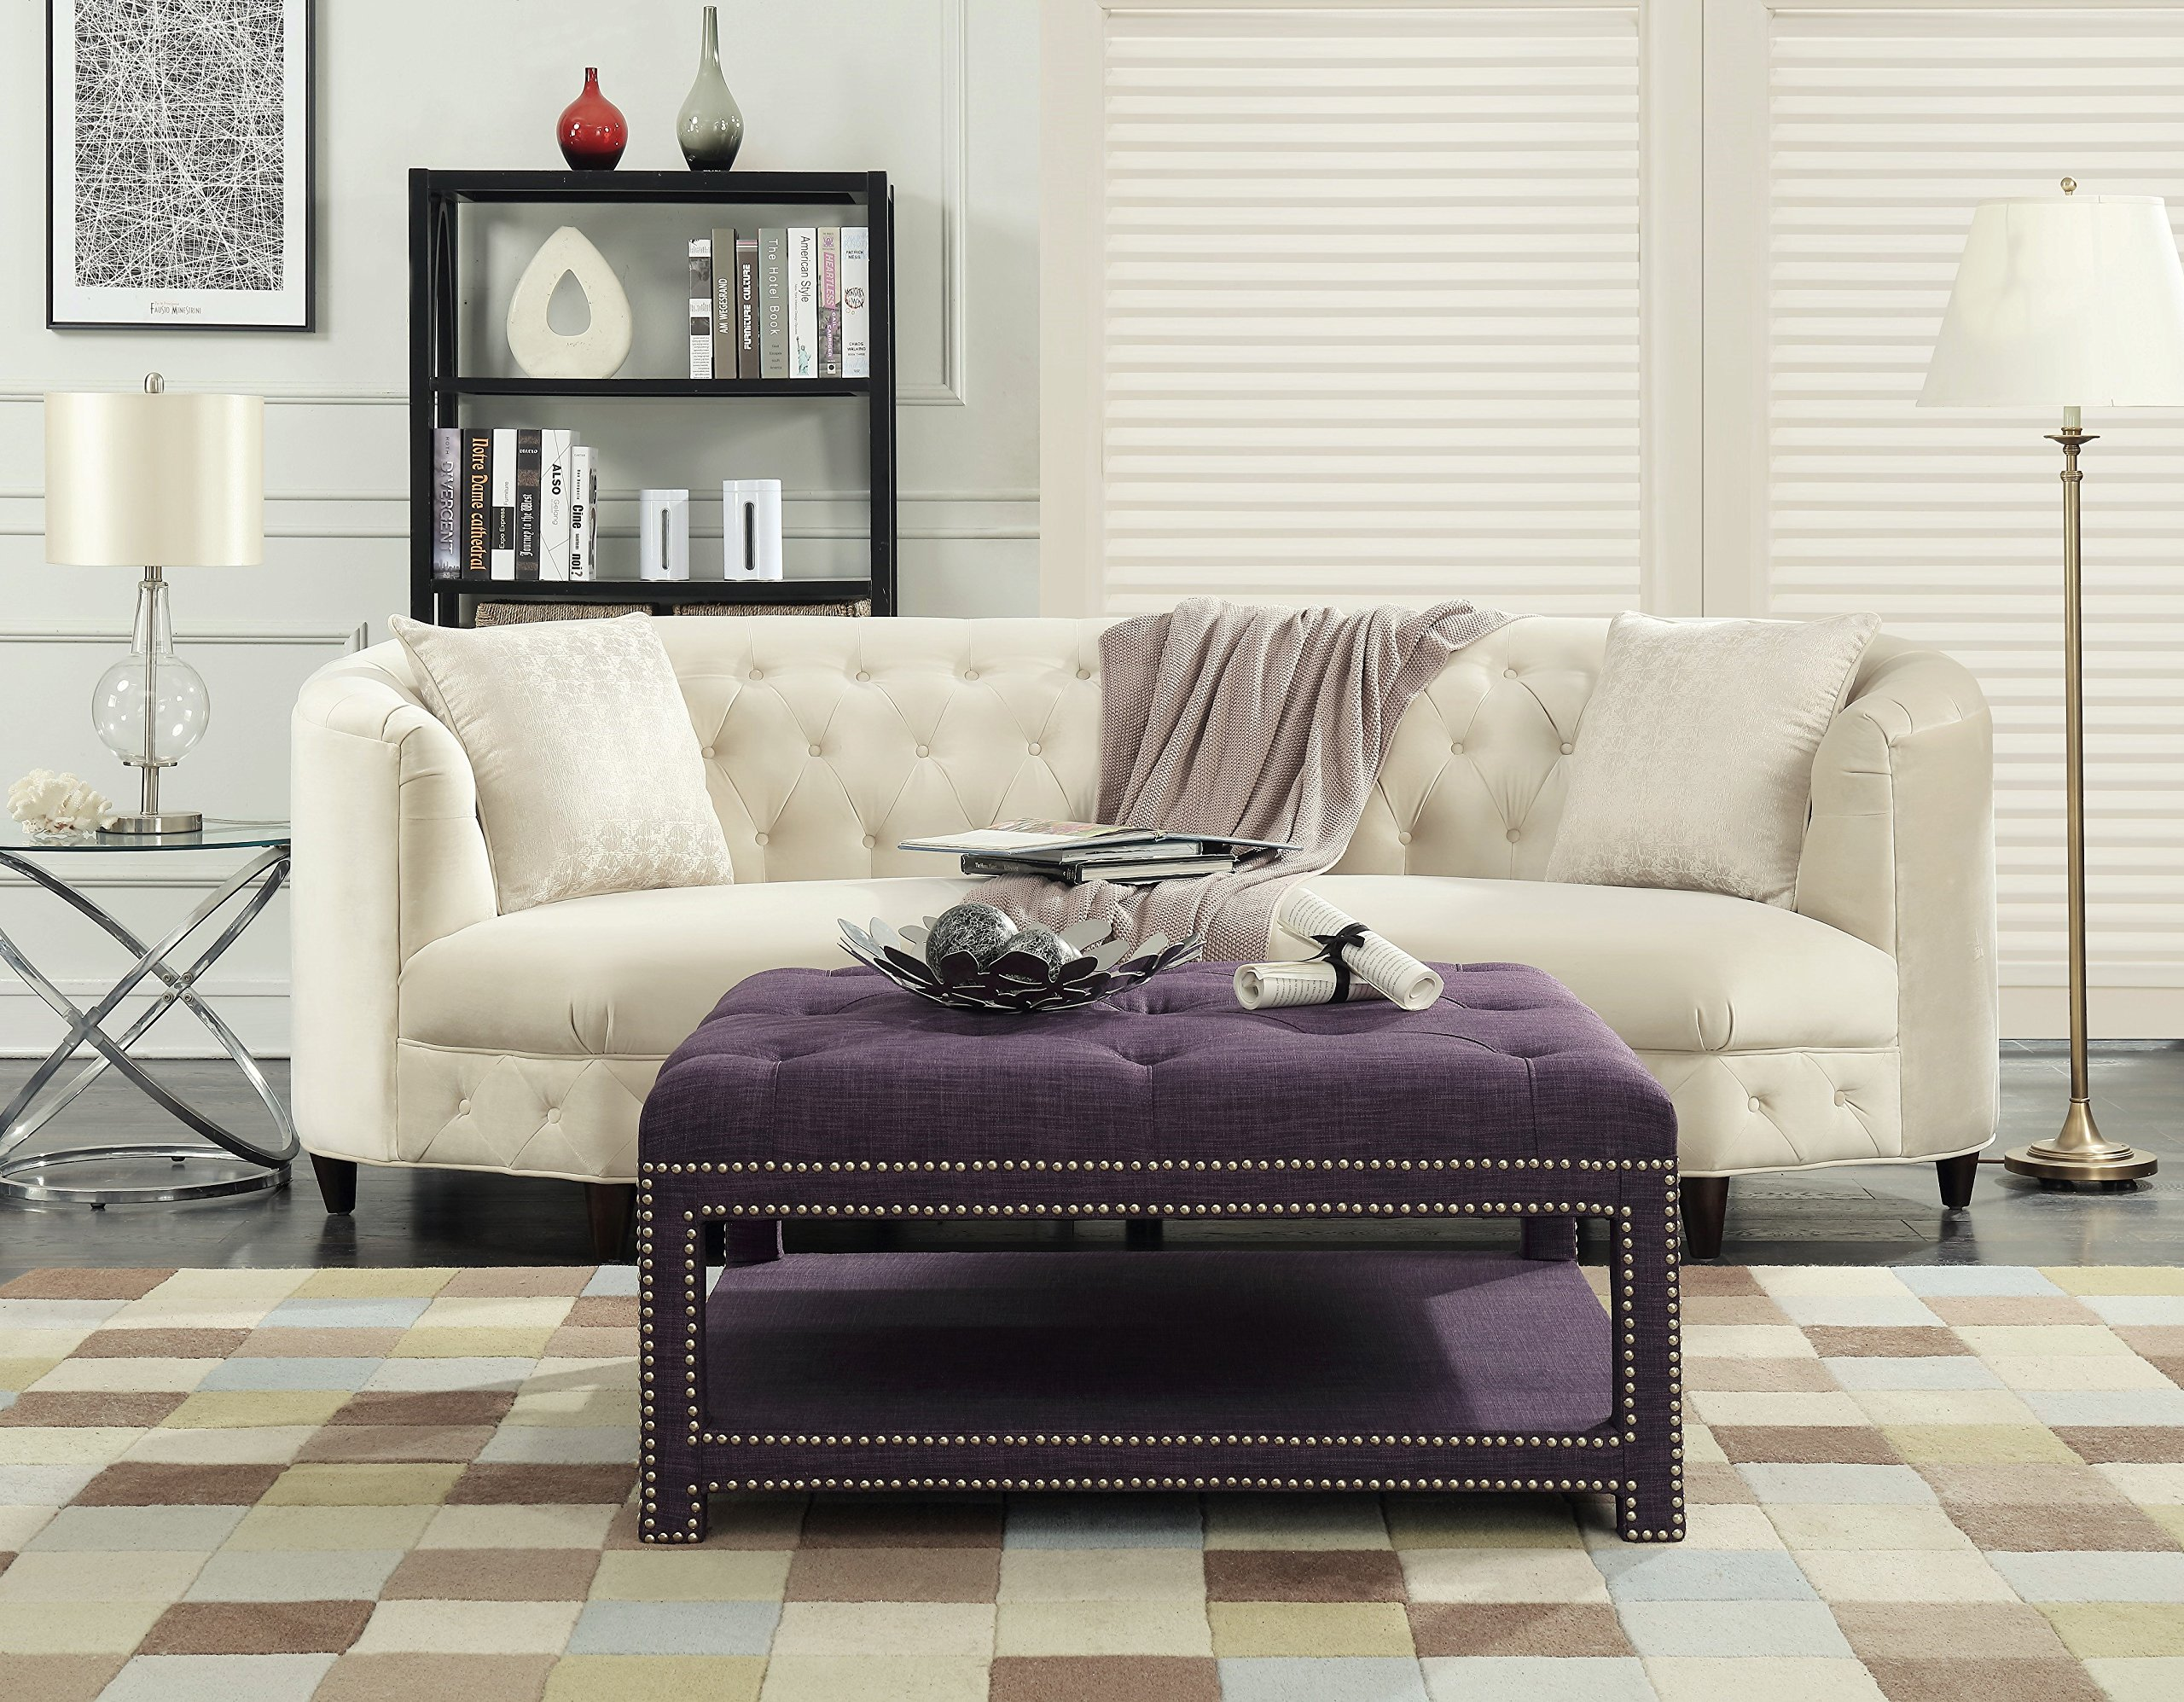 Iconic Home Bina Coffee Table Ottoman 2-Layer Polished Nailhead Tufted Linen Bench, Purple by Iconic Home